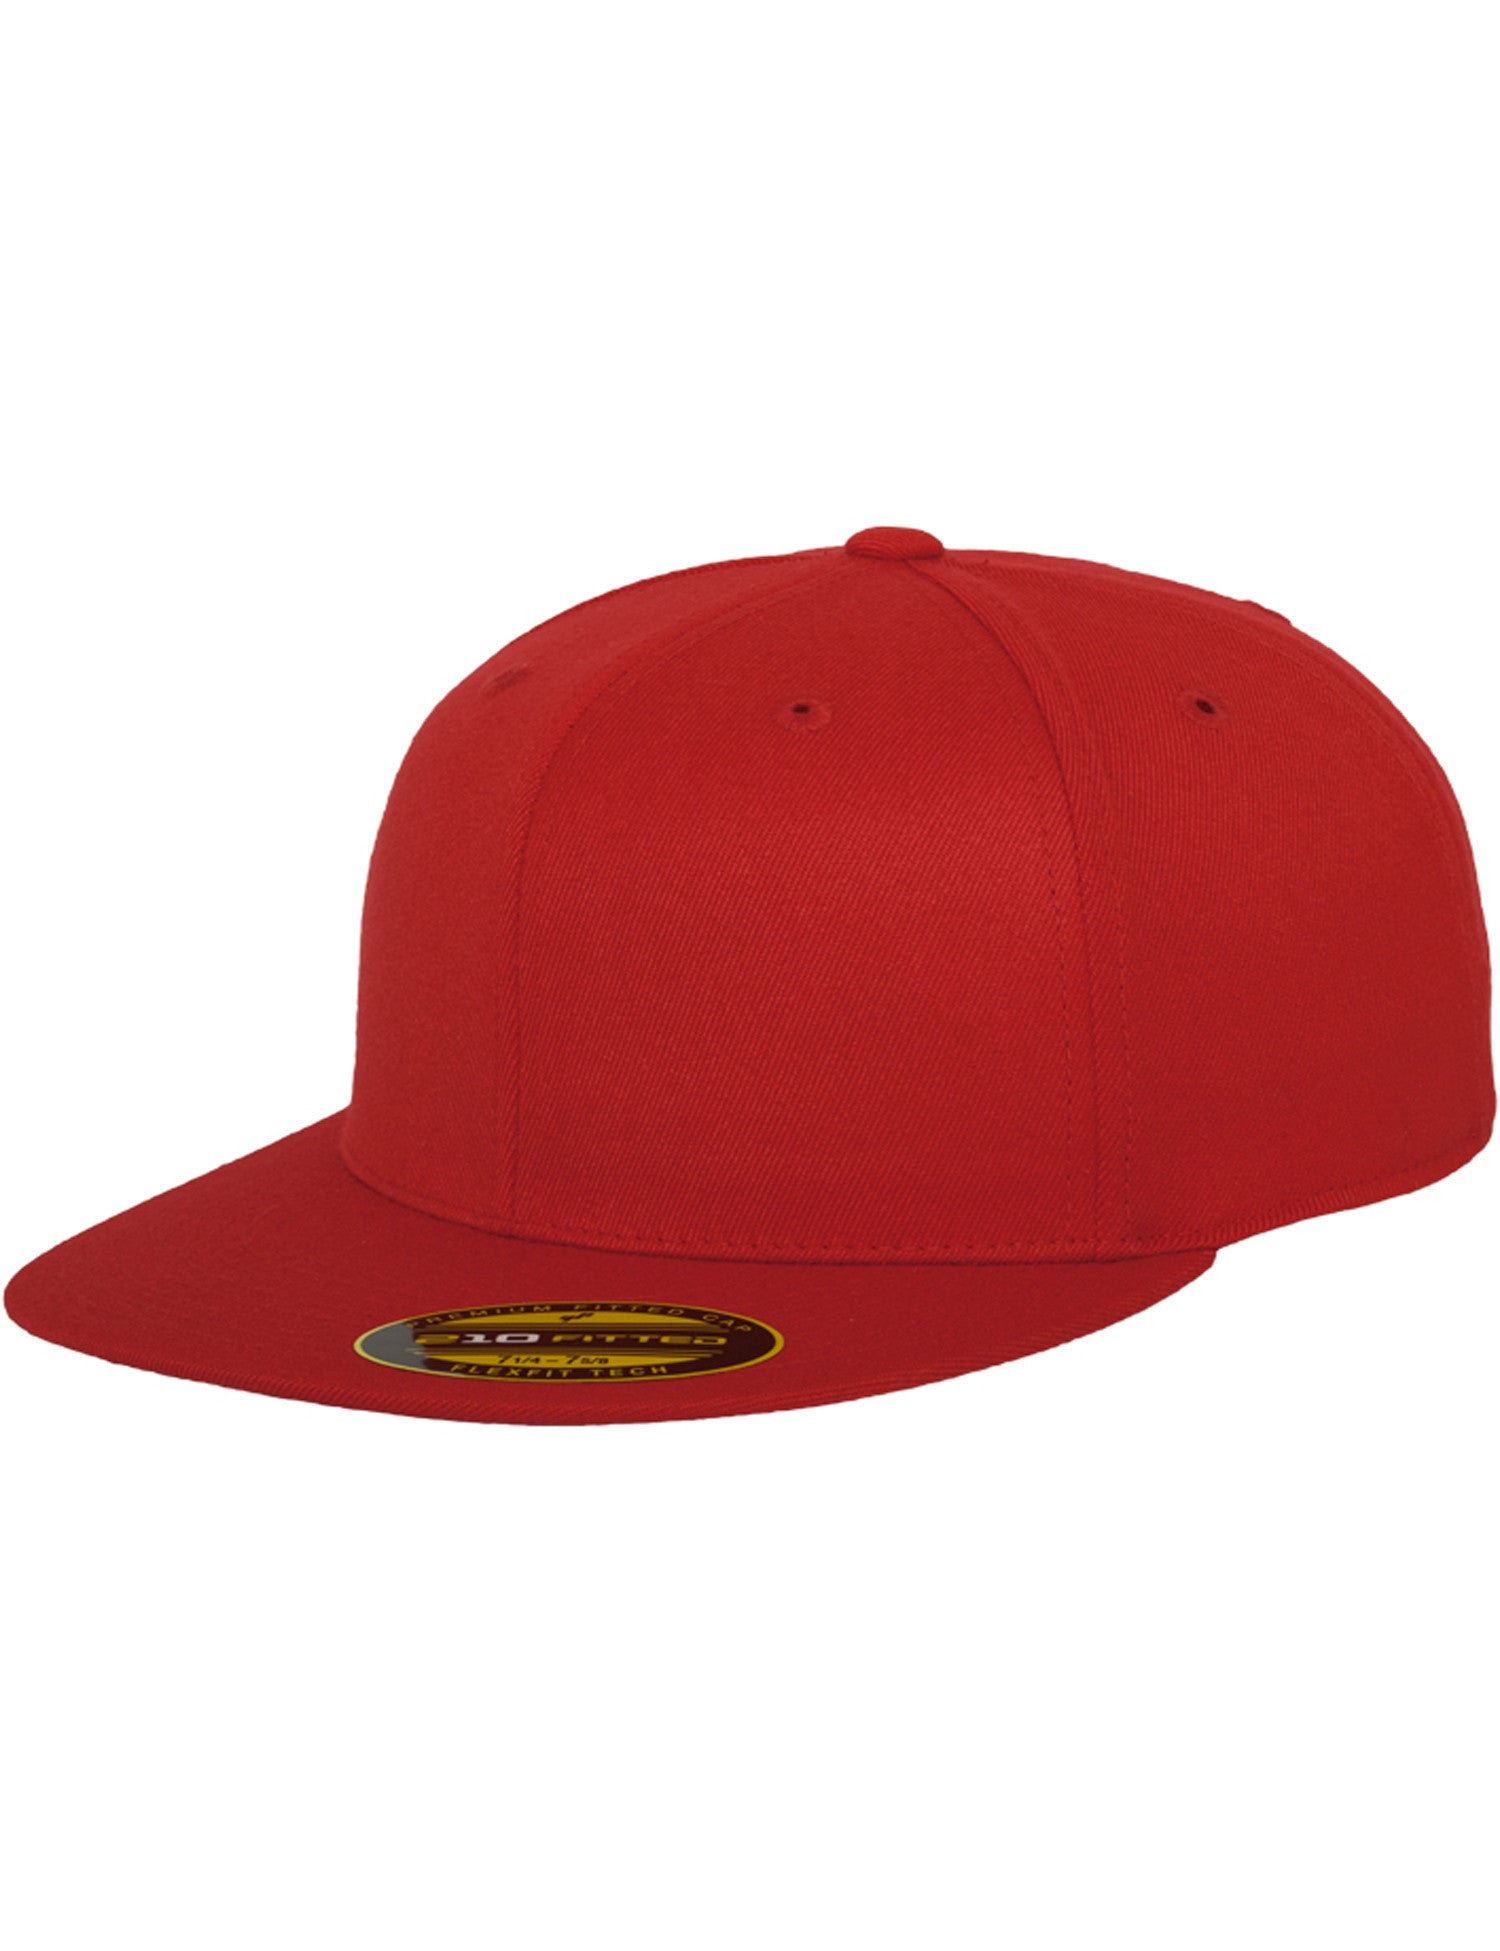 PREMIUM 210 FITTED CAPS Red